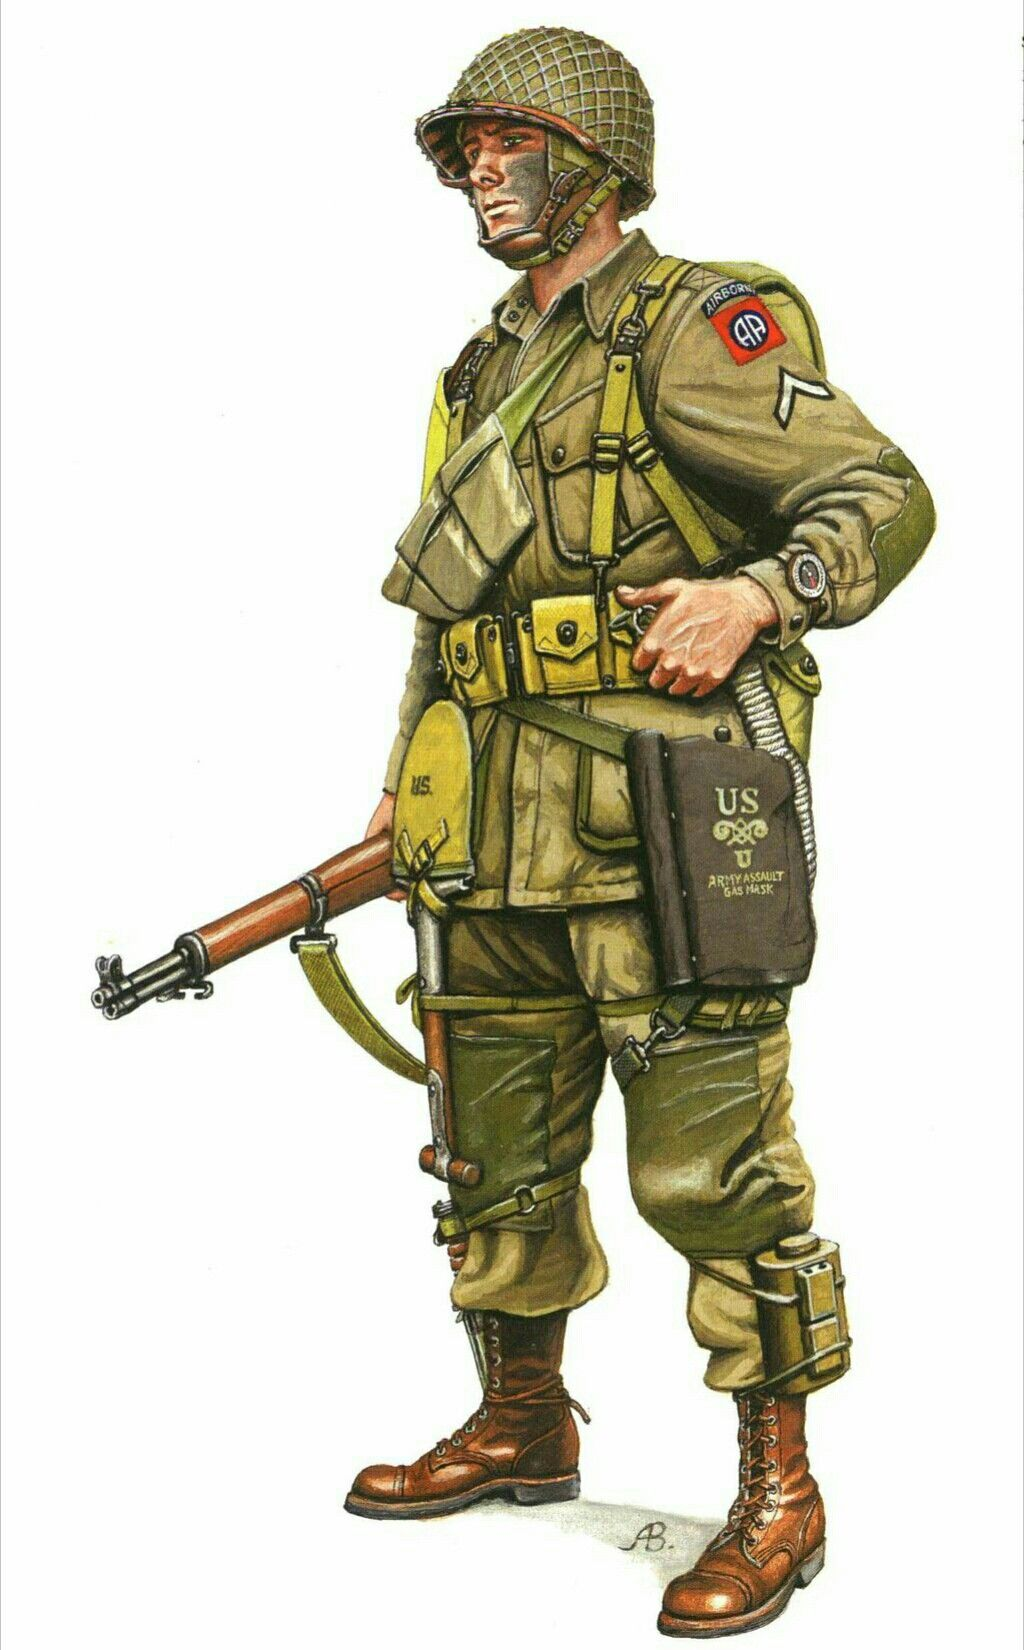 8c87ad4a U.S. paratrooper, WWII   WWII Uniforms and weapons   Guerre mondiale ...